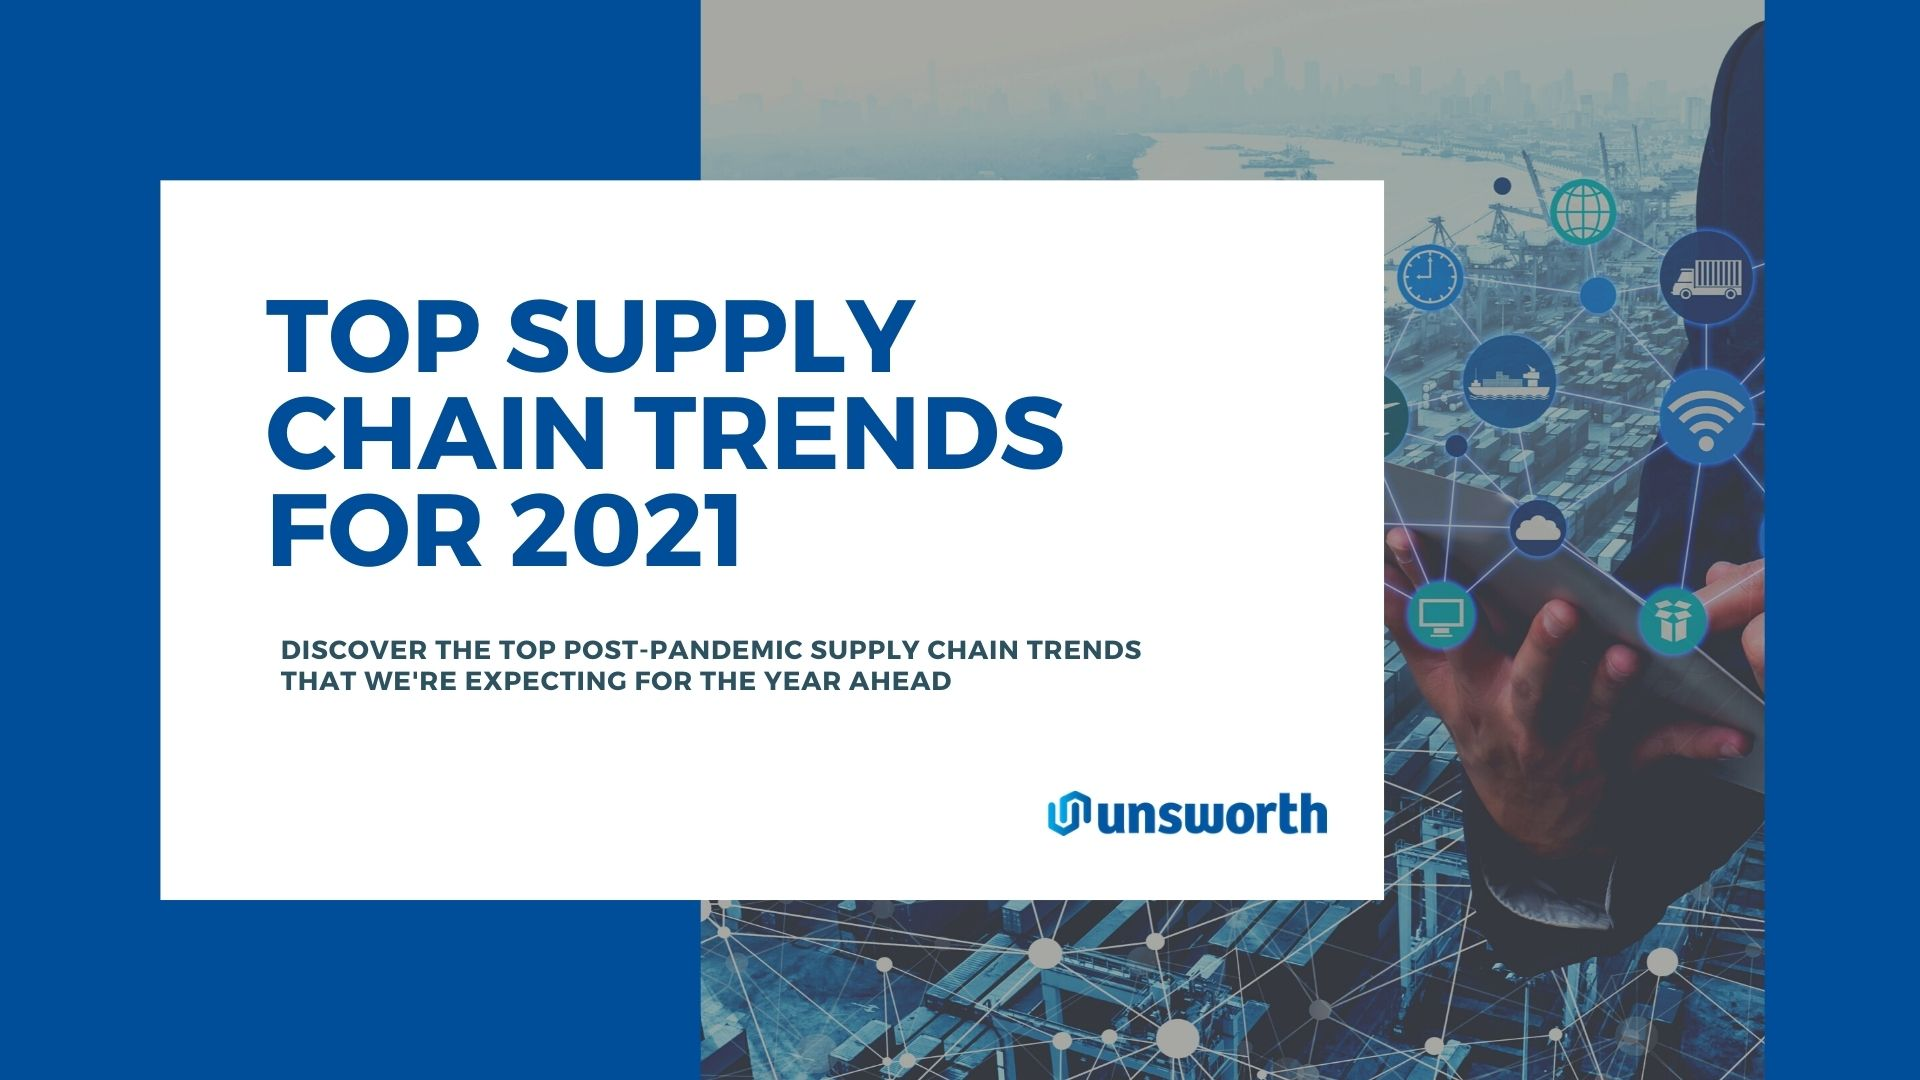 Top supply chain trends for 2021 | Whitepaper | Unsworth